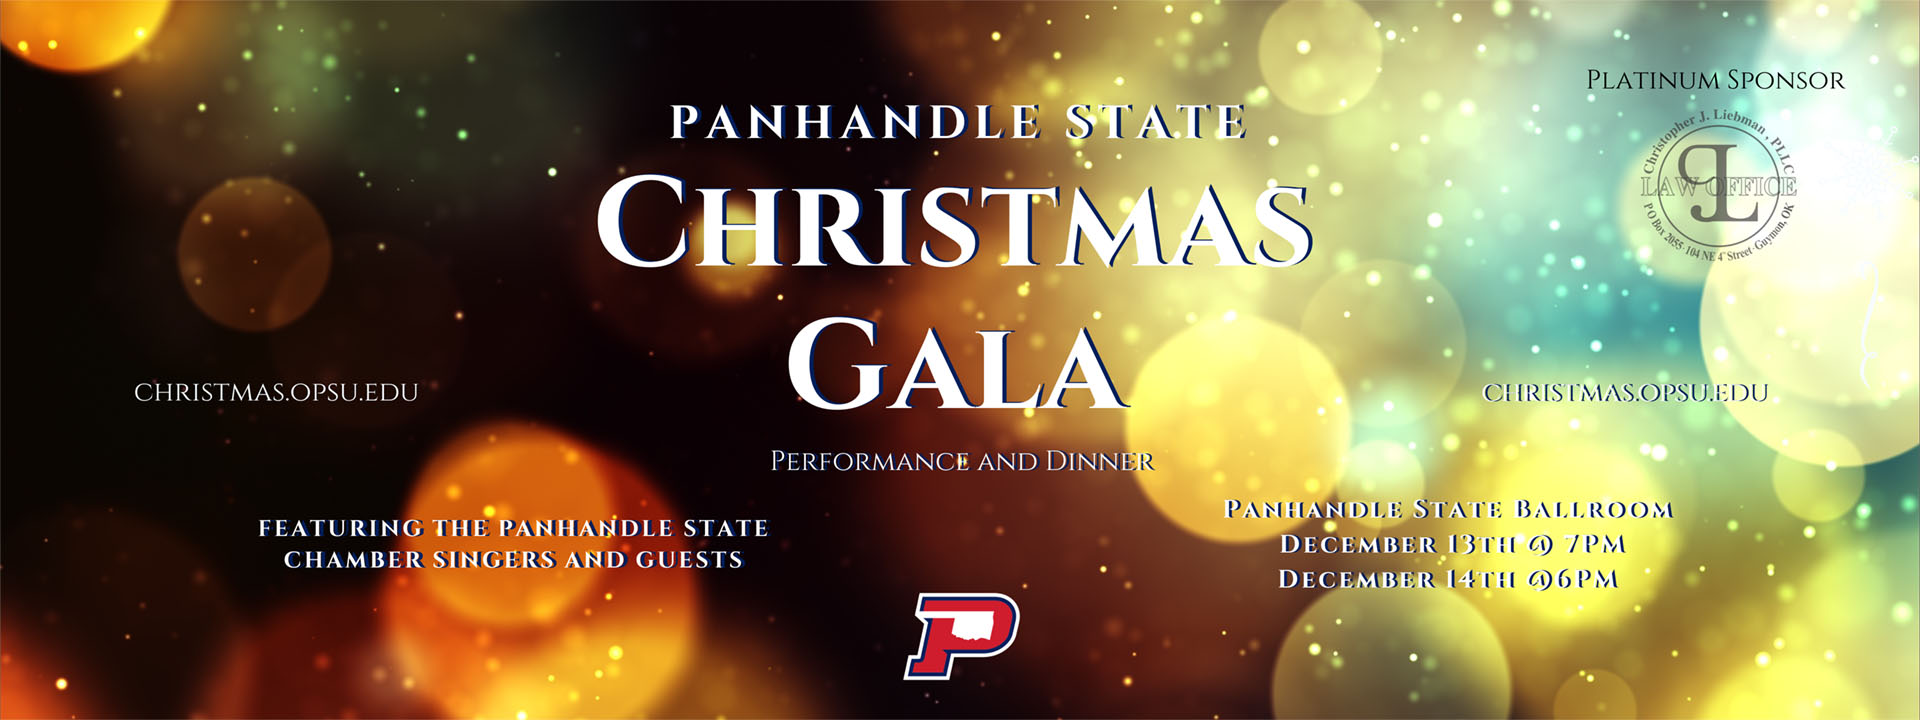 Christmas Gala Performance and Dinner featuring the Panhandle State Chamber Singers and Guests - December 13th and 14th in the Panhandle State Ballroom